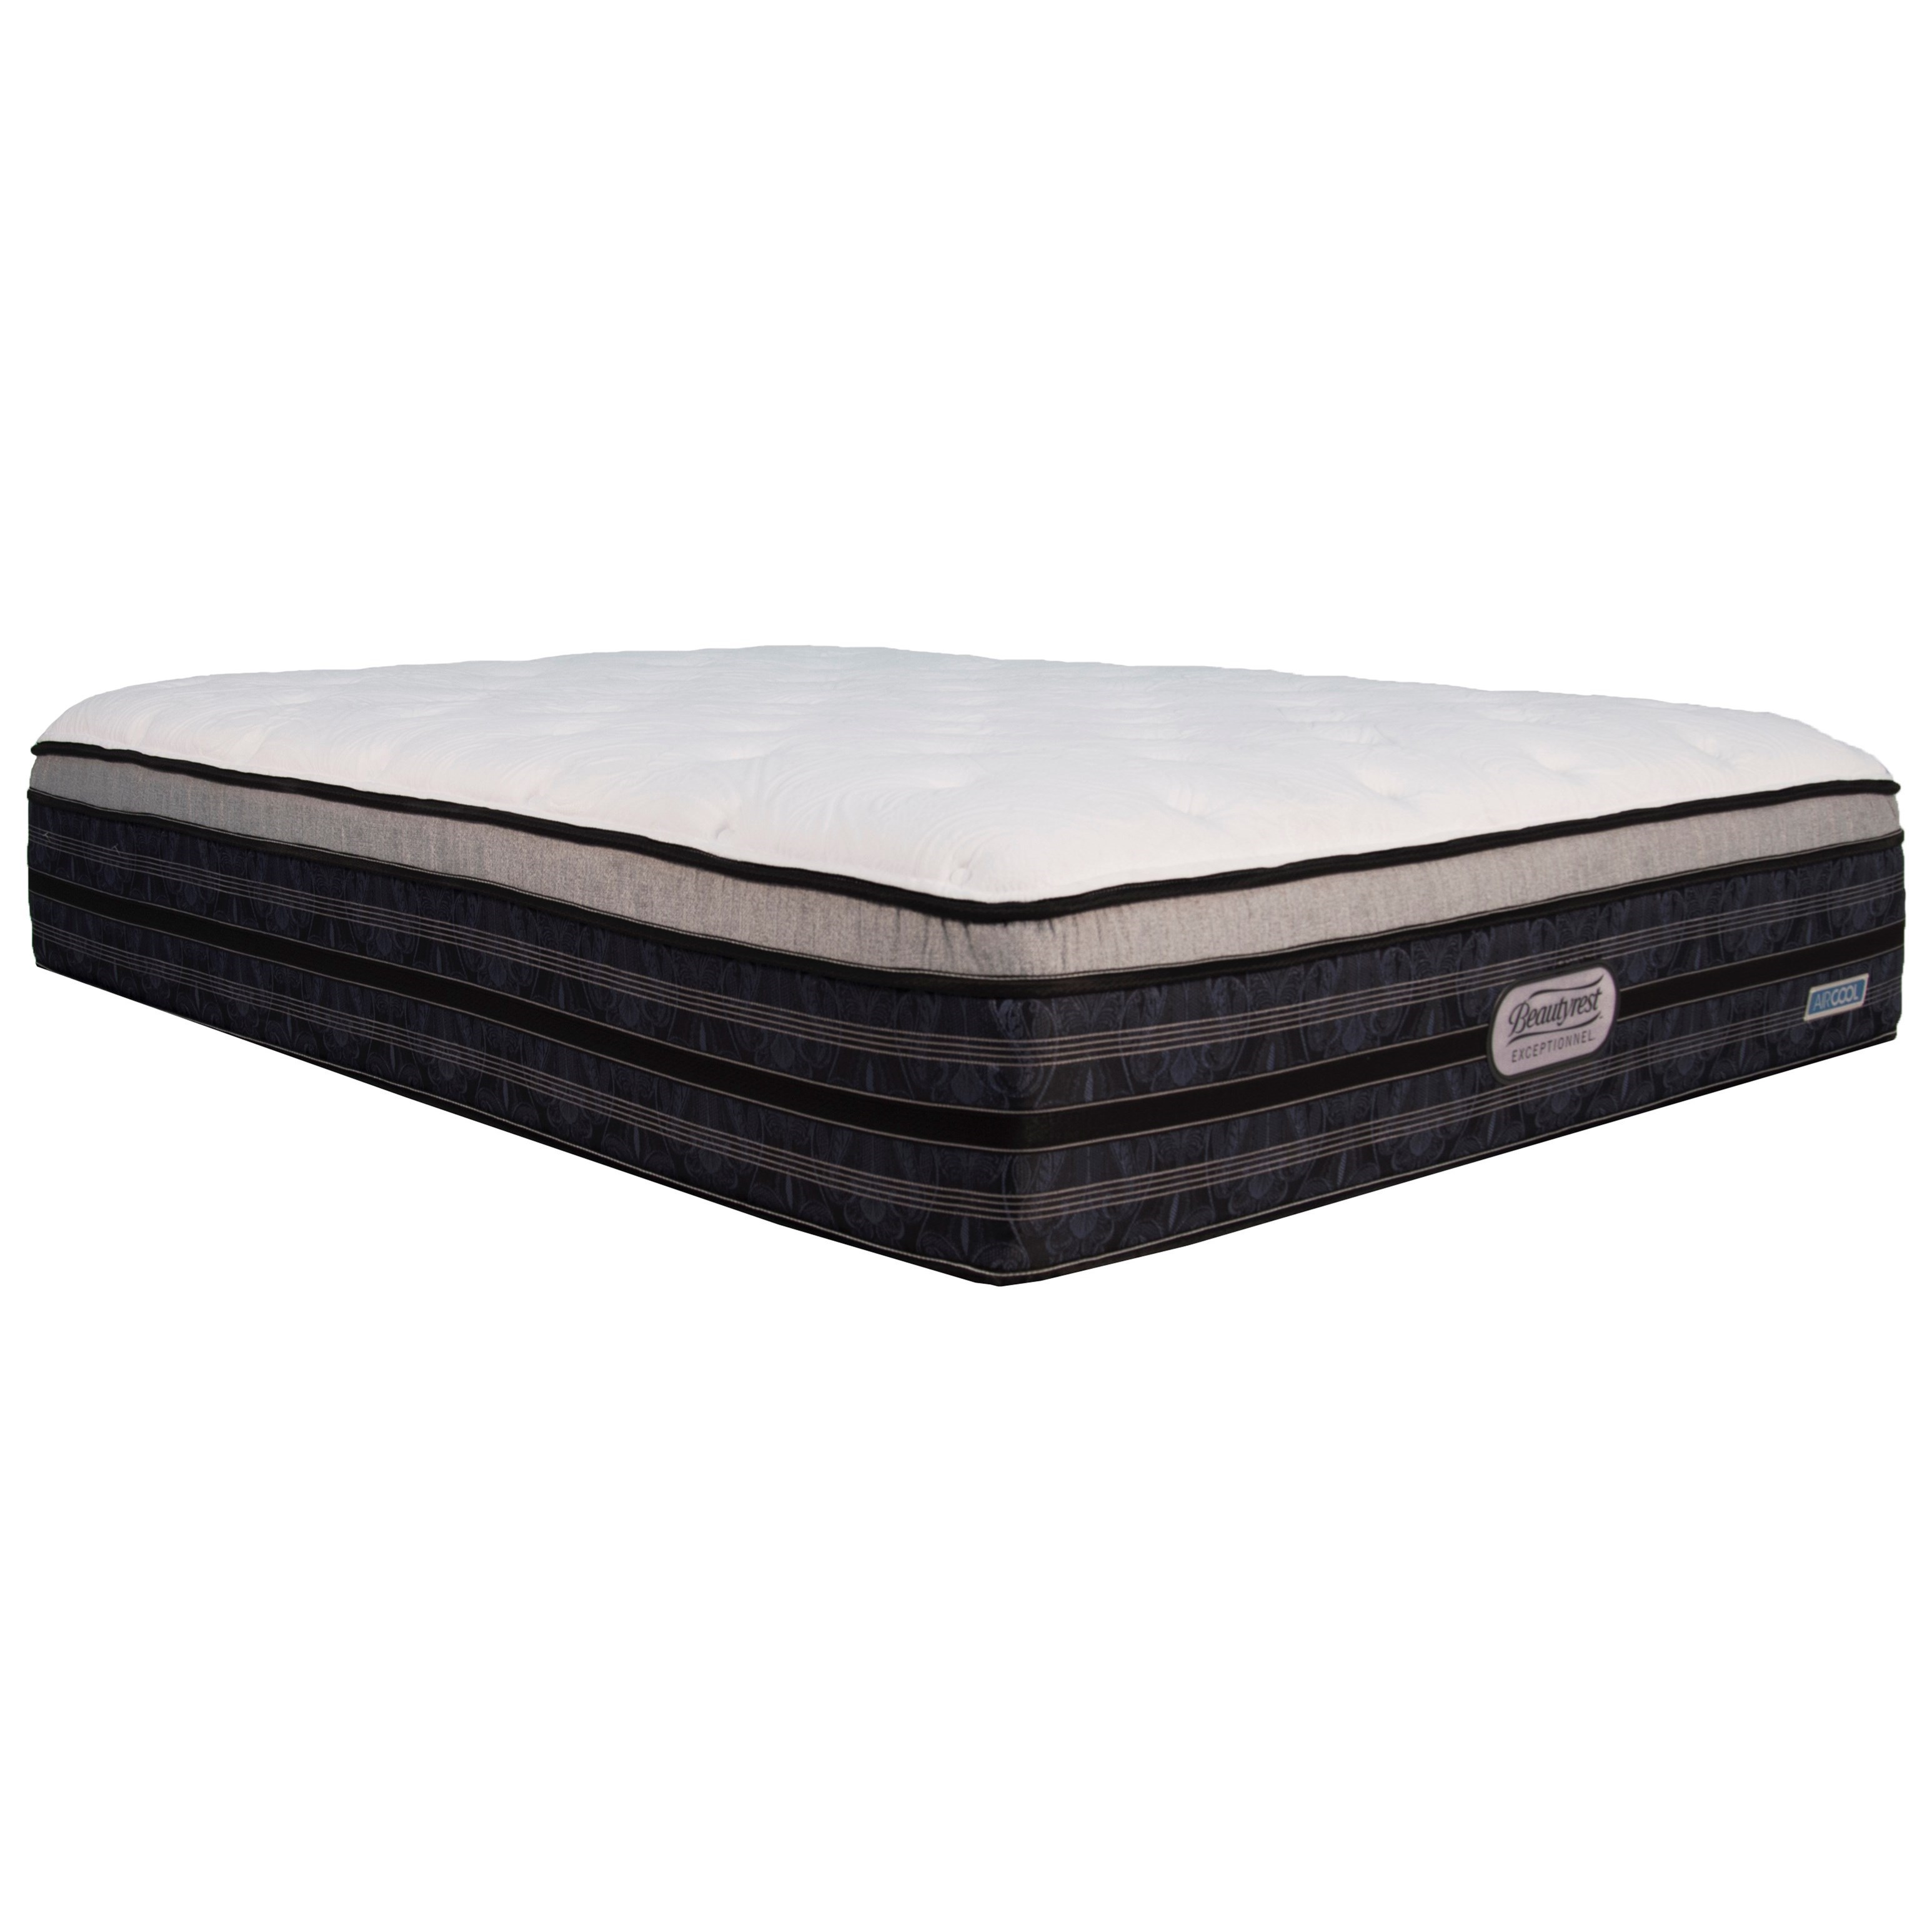 BR Exceptionnel Hewson CT Plush Queen Comfort Top Plush Mattress by Beautyrest Canada at Jordan's Home Furnishings